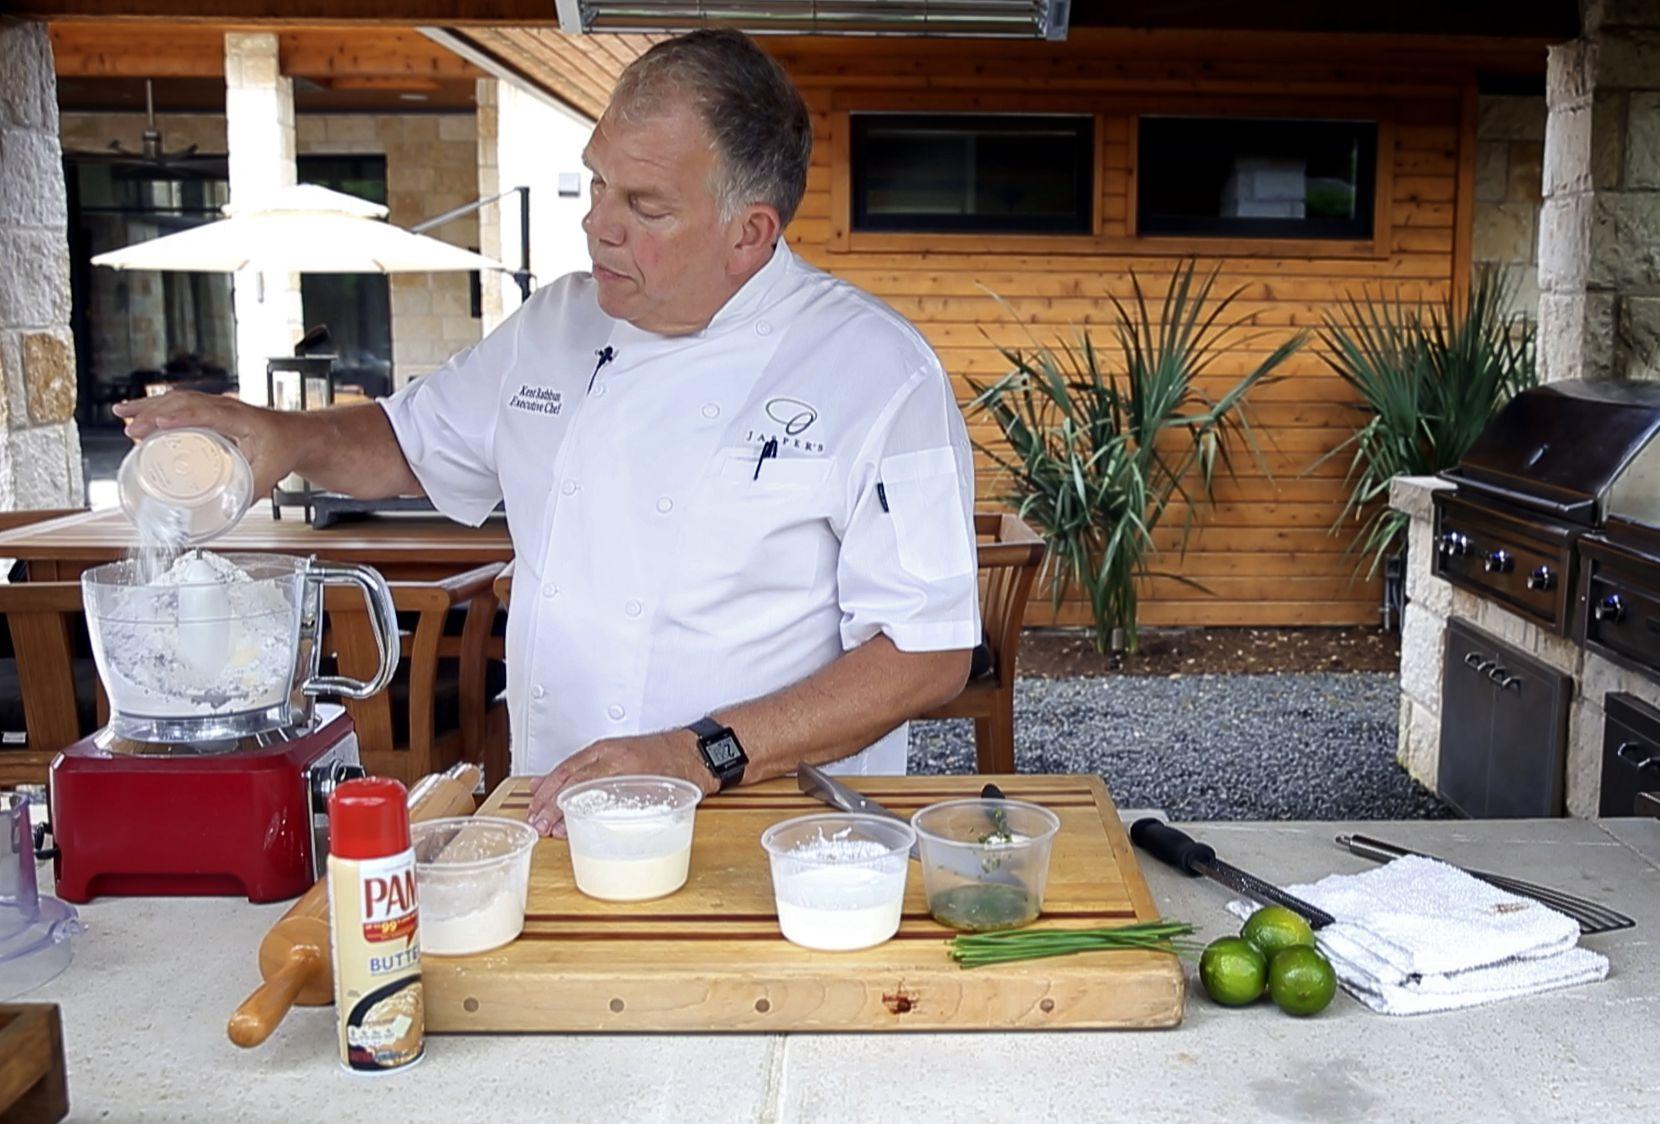 Chef Ken Rathbun dumps flour into a food processor as he makes ancho chili-lime biscuits at his home.